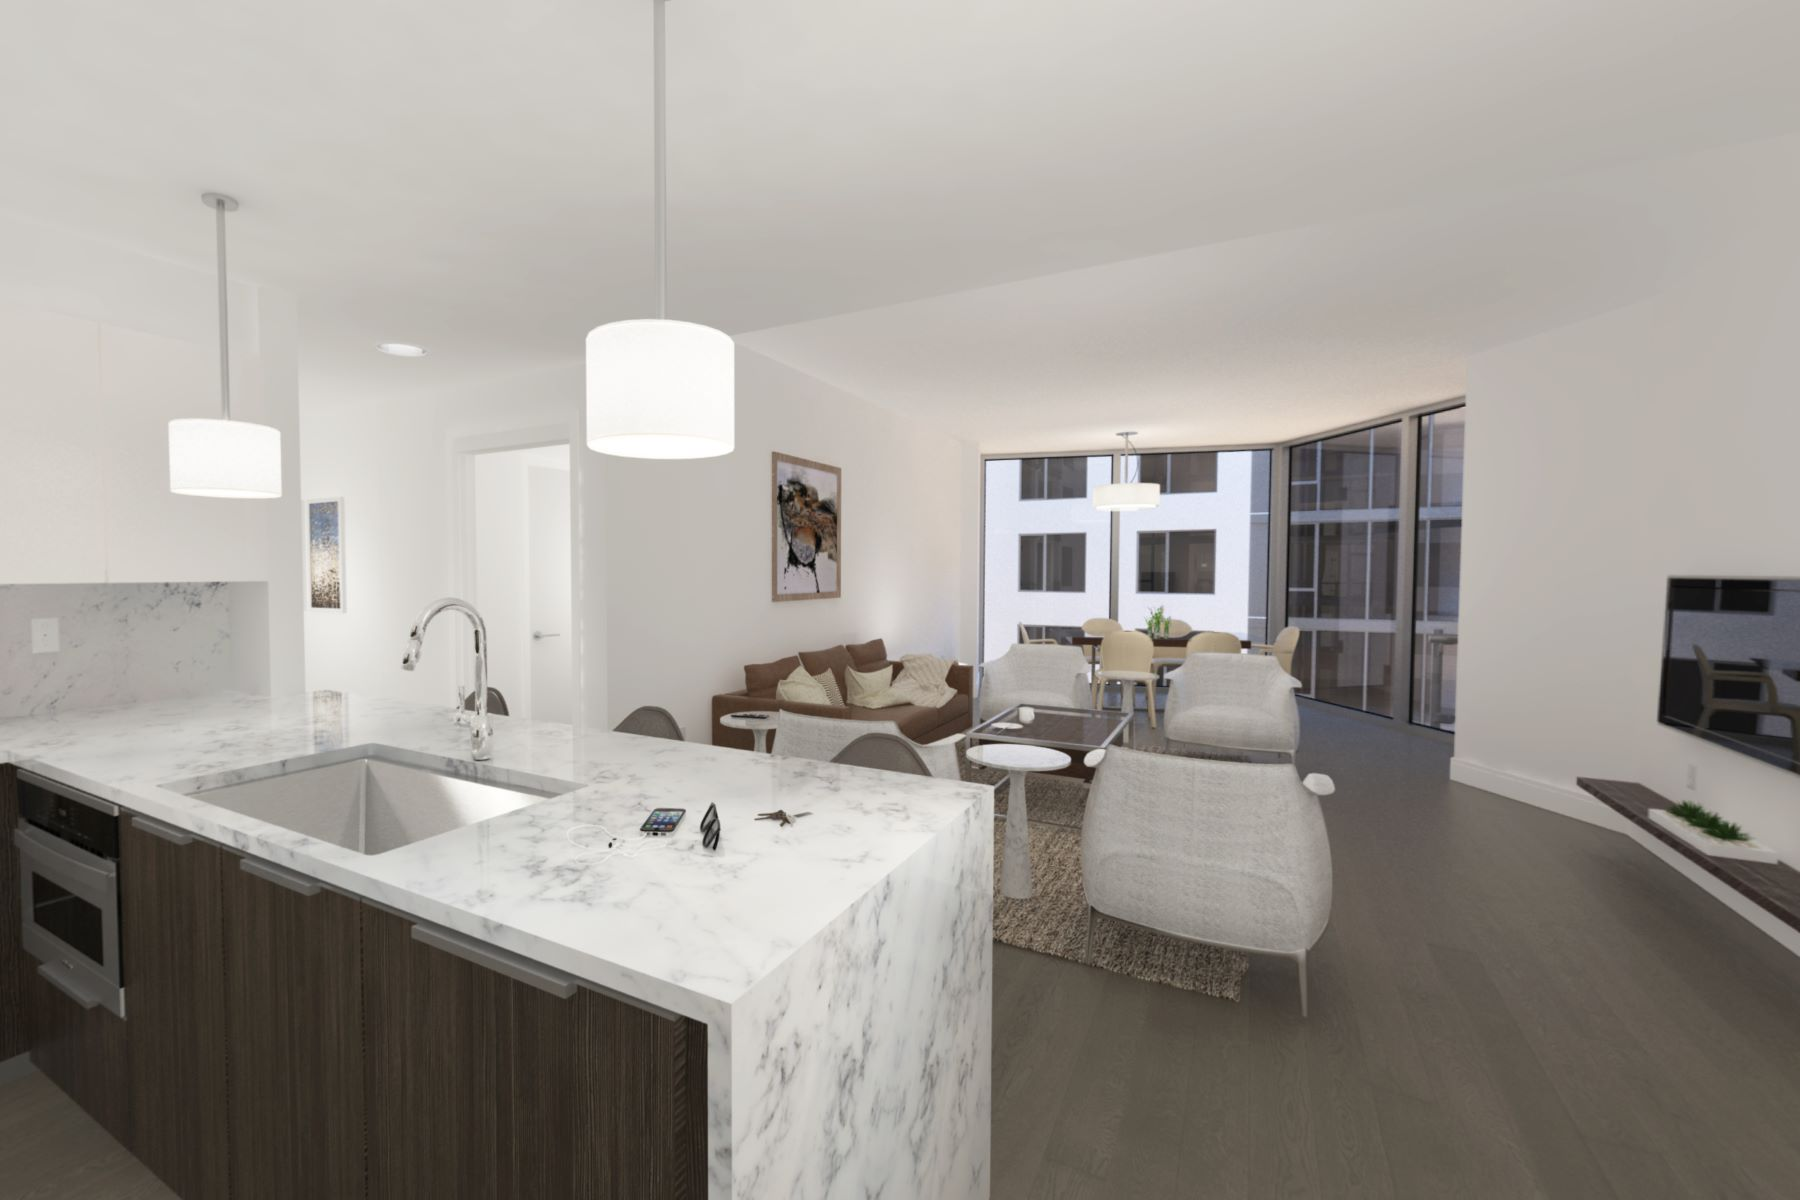 Condominium for Sale at This beautifully designed luxury building features breathtaking views of NYC 9 Avenue at Port Imperial #1012 West New York, New Jersey 07093 United States